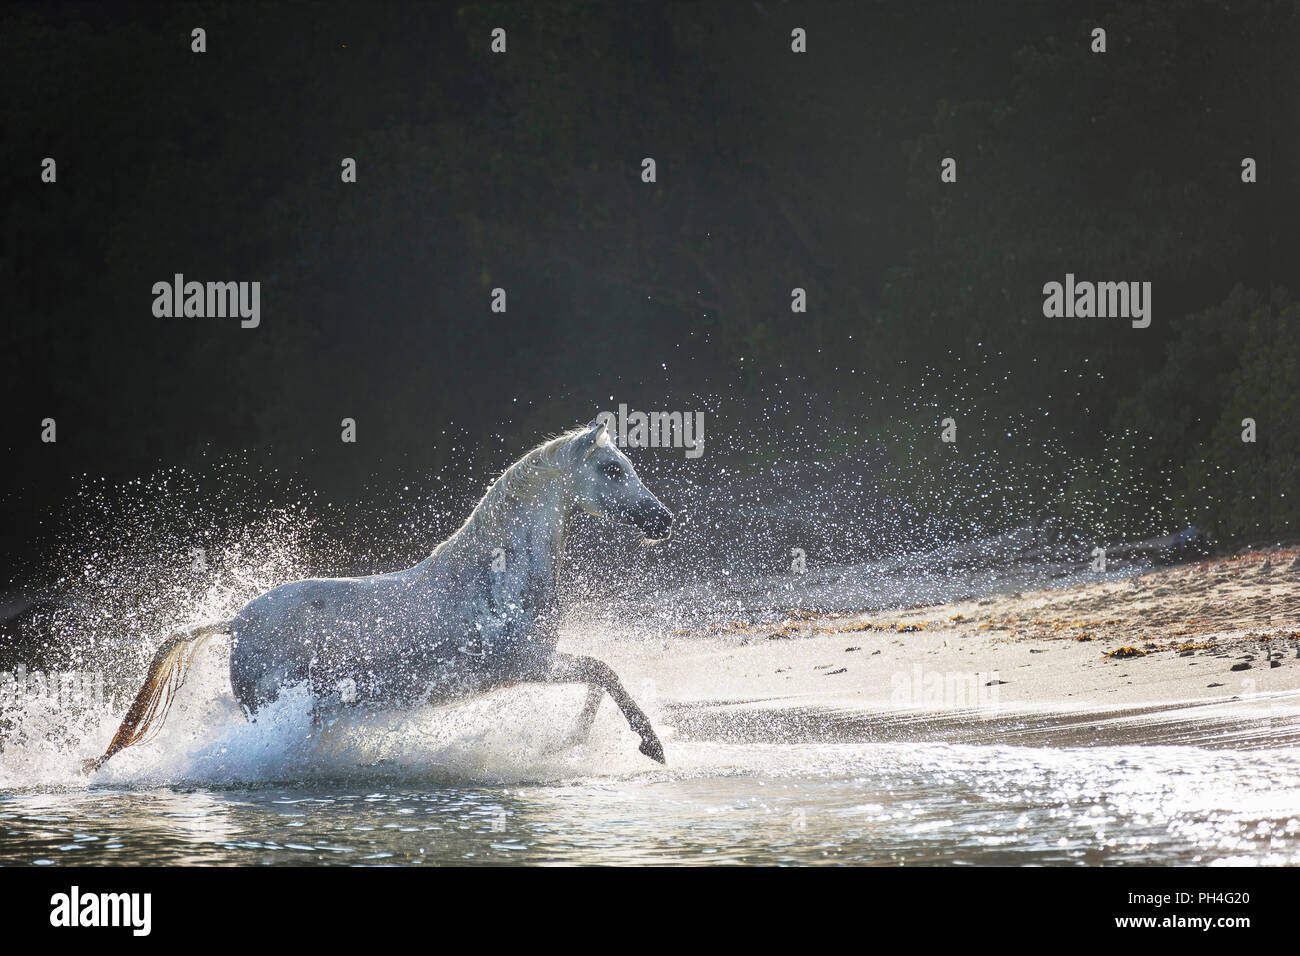 Arabian horse. Gray mare galloping out of the sea onto a tropical beach. Seychelles - Stock Image